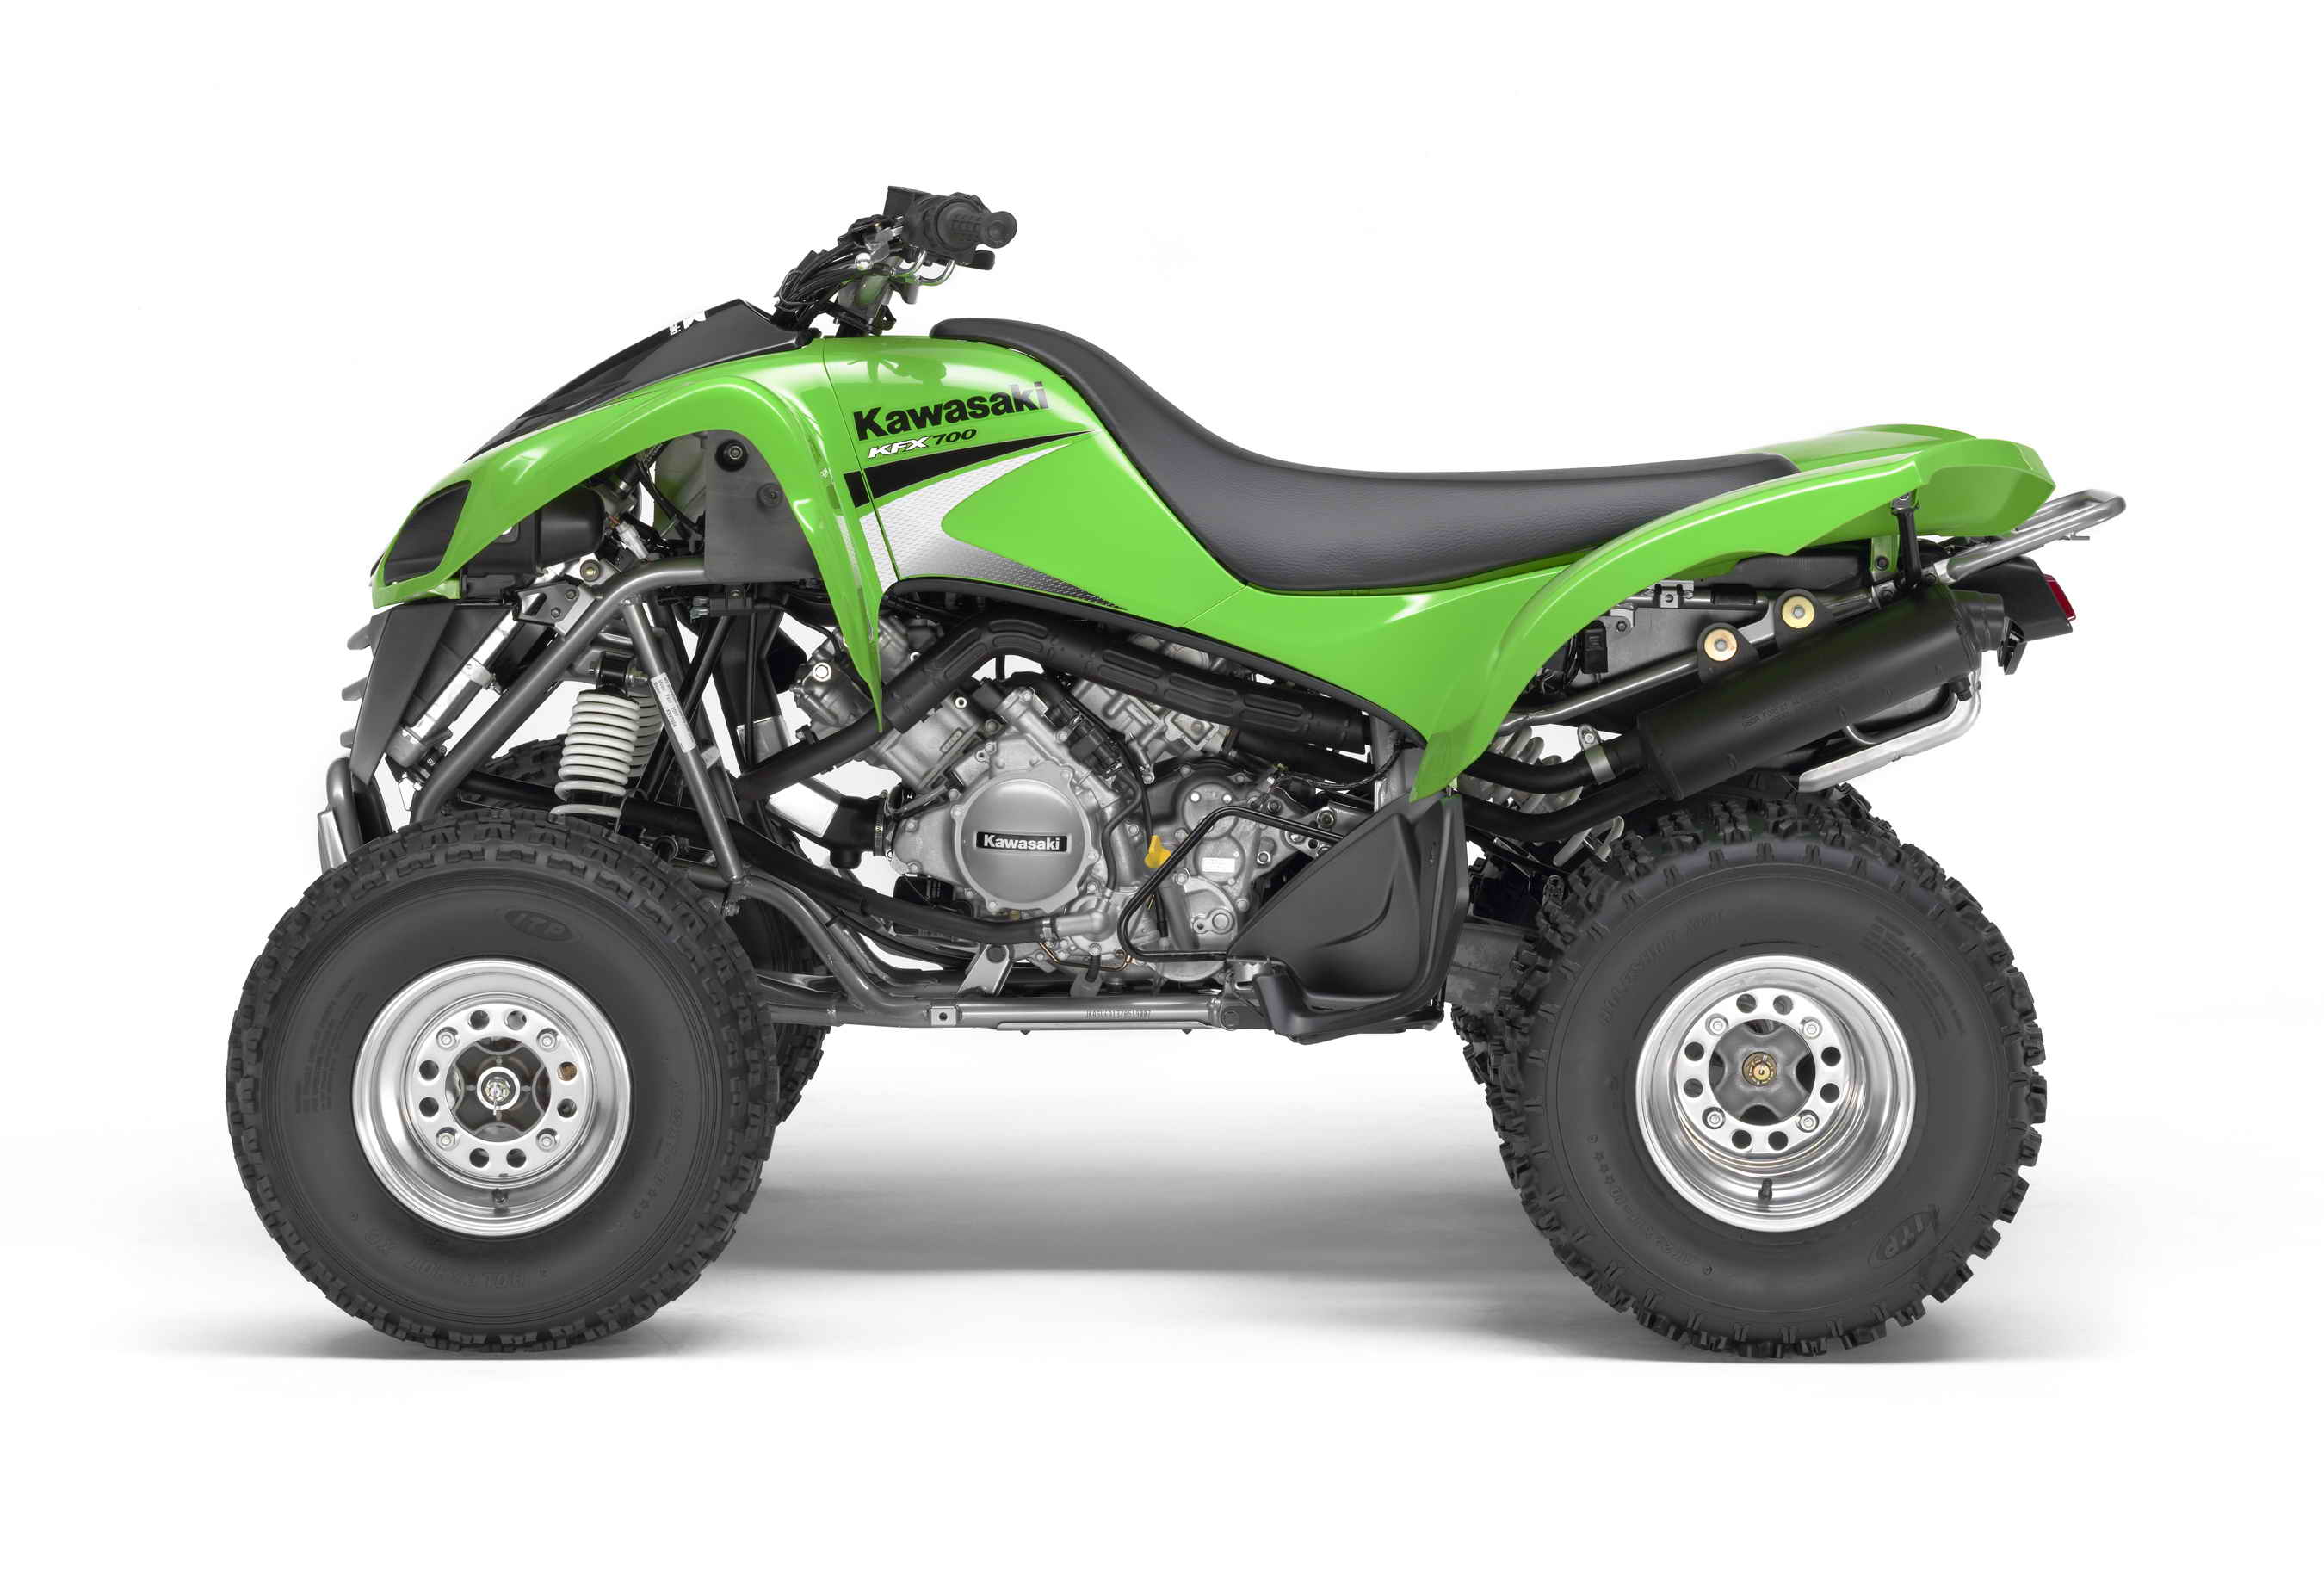 2007 Kawasaki KFX700 Review - Top Speed